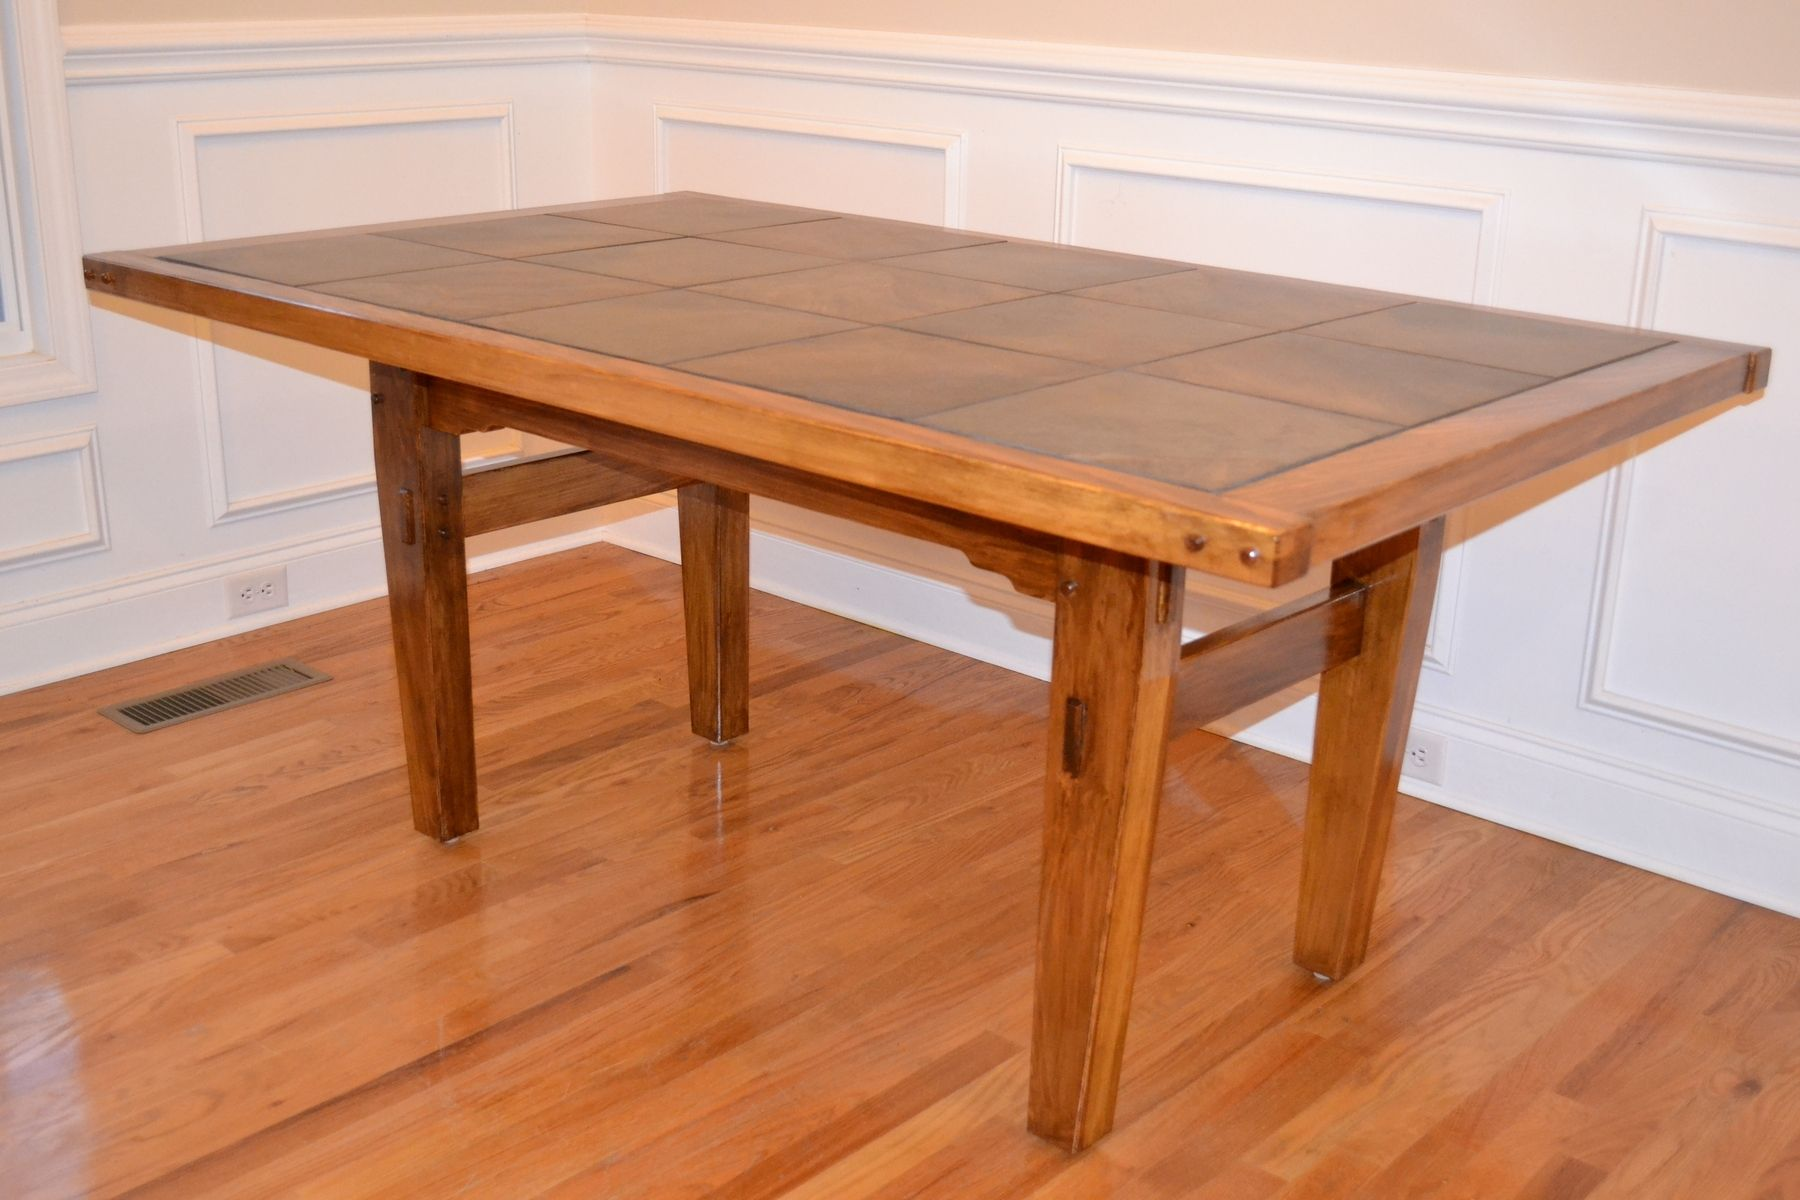 Handmade Cypress Dining Table With Tile Top by Wonder Woodworking